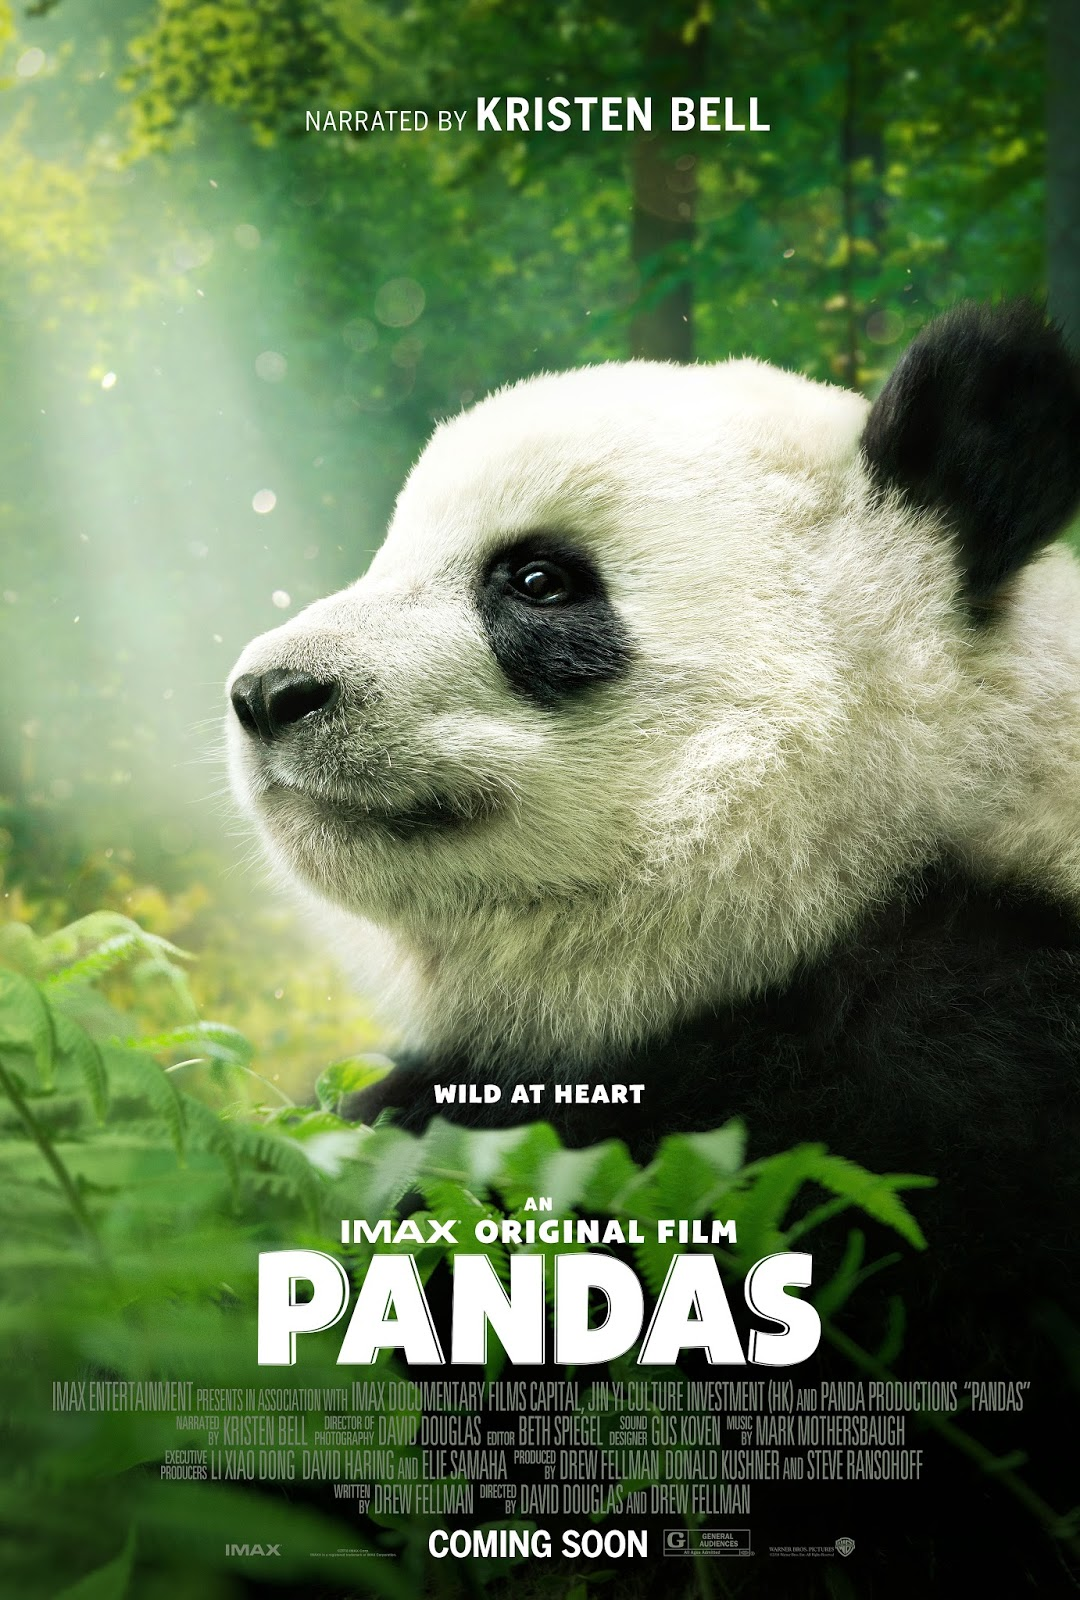 Chiil mama imax documentary pandas narrated by kristen bell begins imax corporation nyseimax and warner bros pictures announced that kristen bell frozen tvs the good place will narrate the latest imax documentary fandeluxe Images